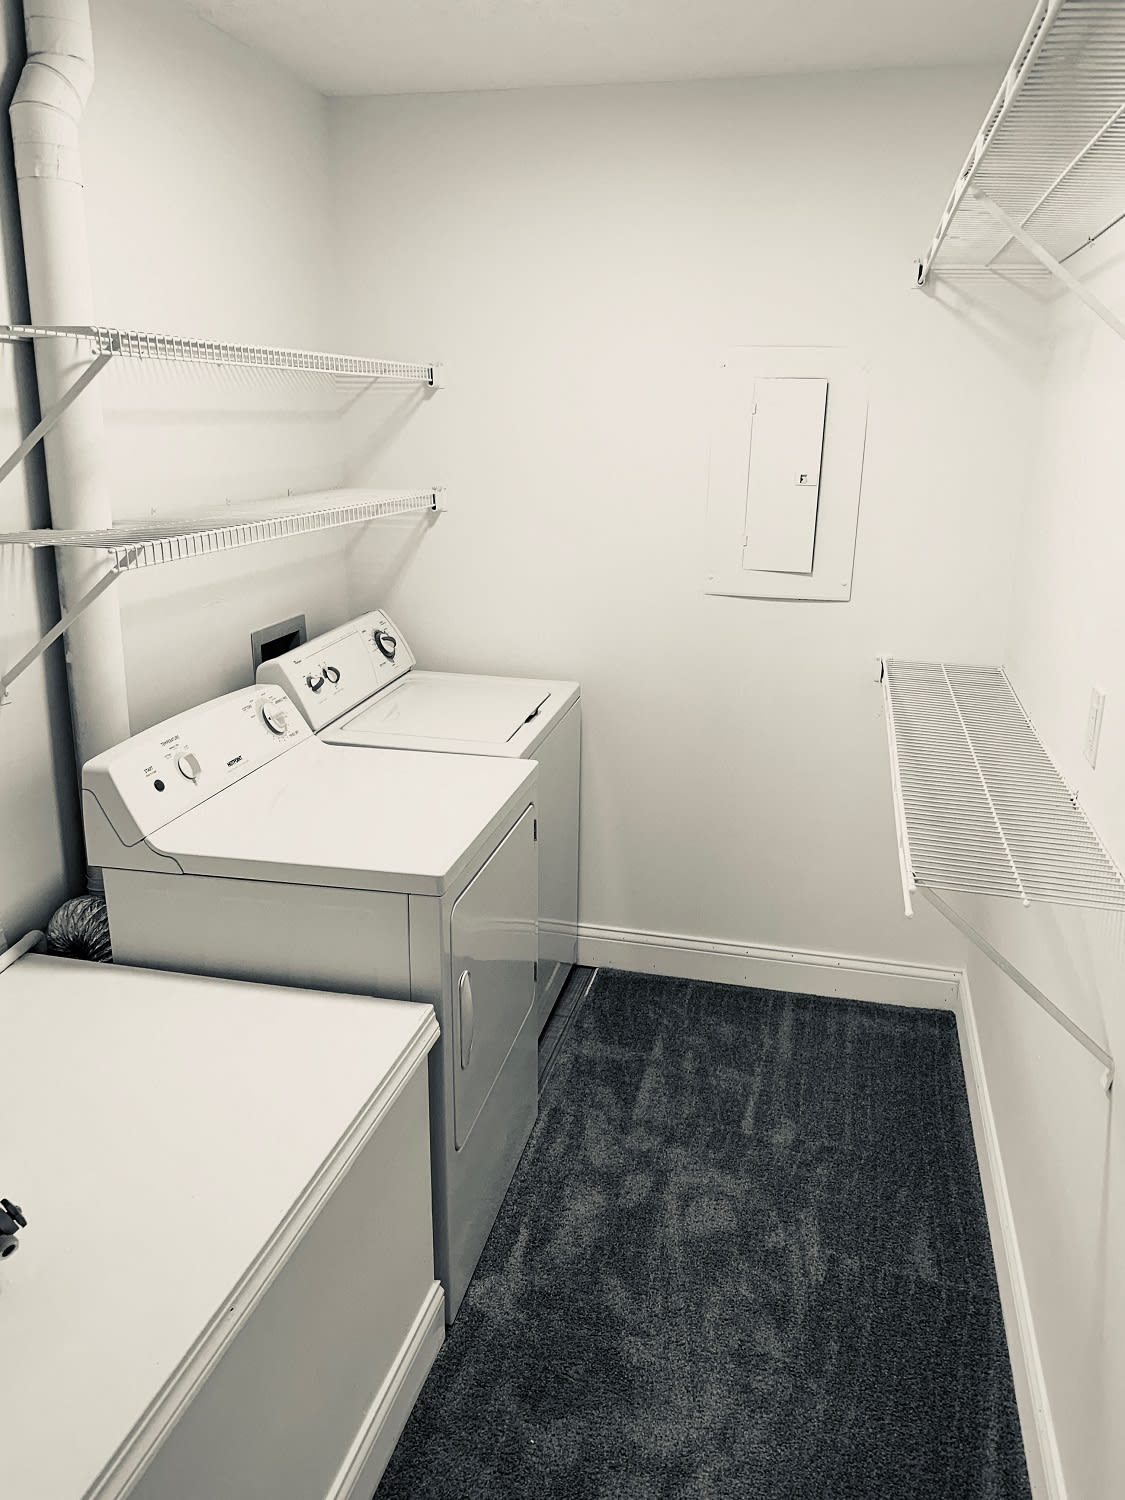 Walk-in closet with washer and dryer at Brittany Bay Apartments and Townhomes in Groveport, Ohio